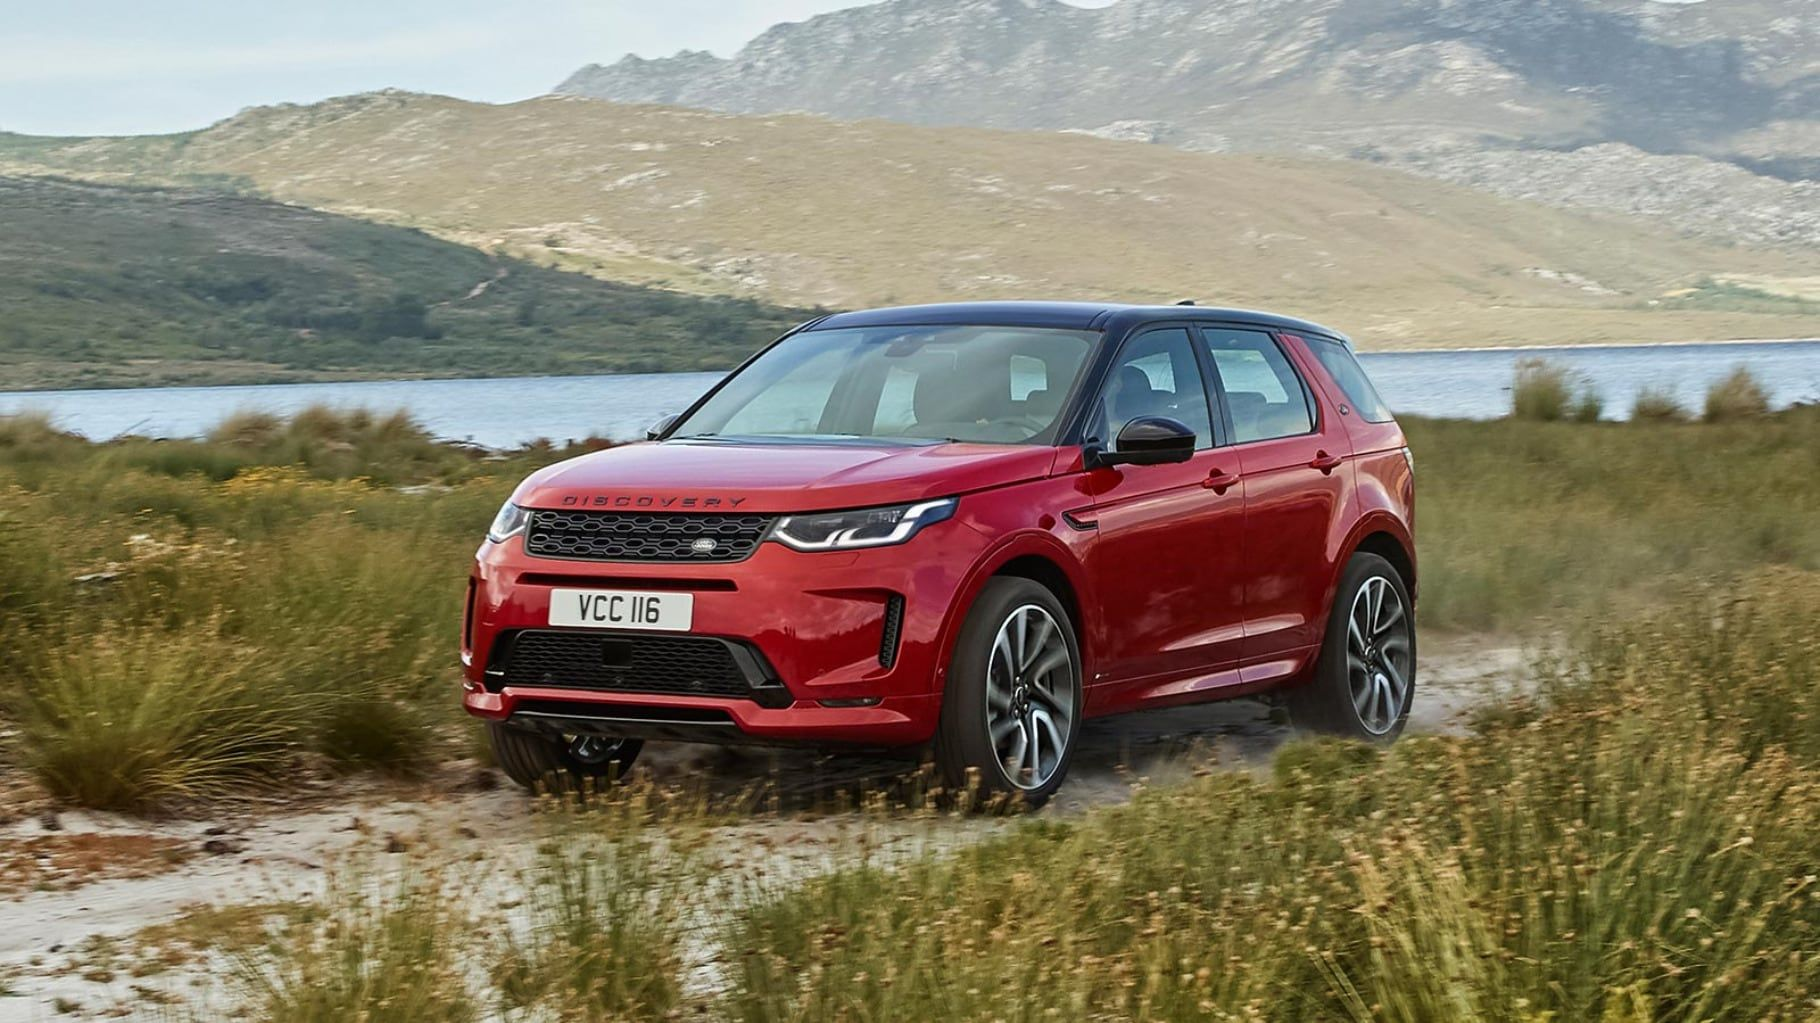 2020 Discovery Sport Video Gallery Land Rover USA in